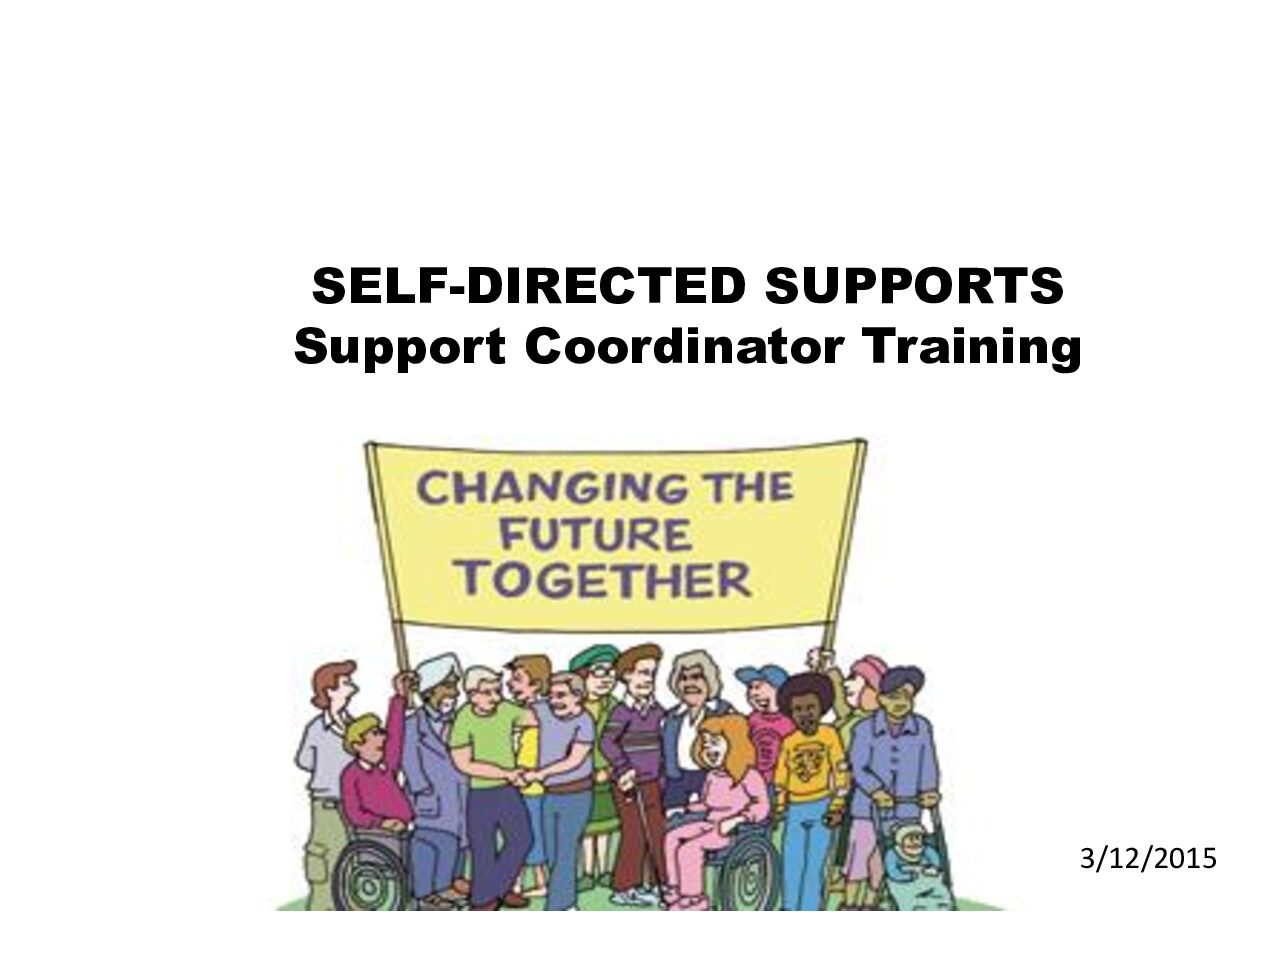 Self-Directed Supports Support Coordinator Training Presentation